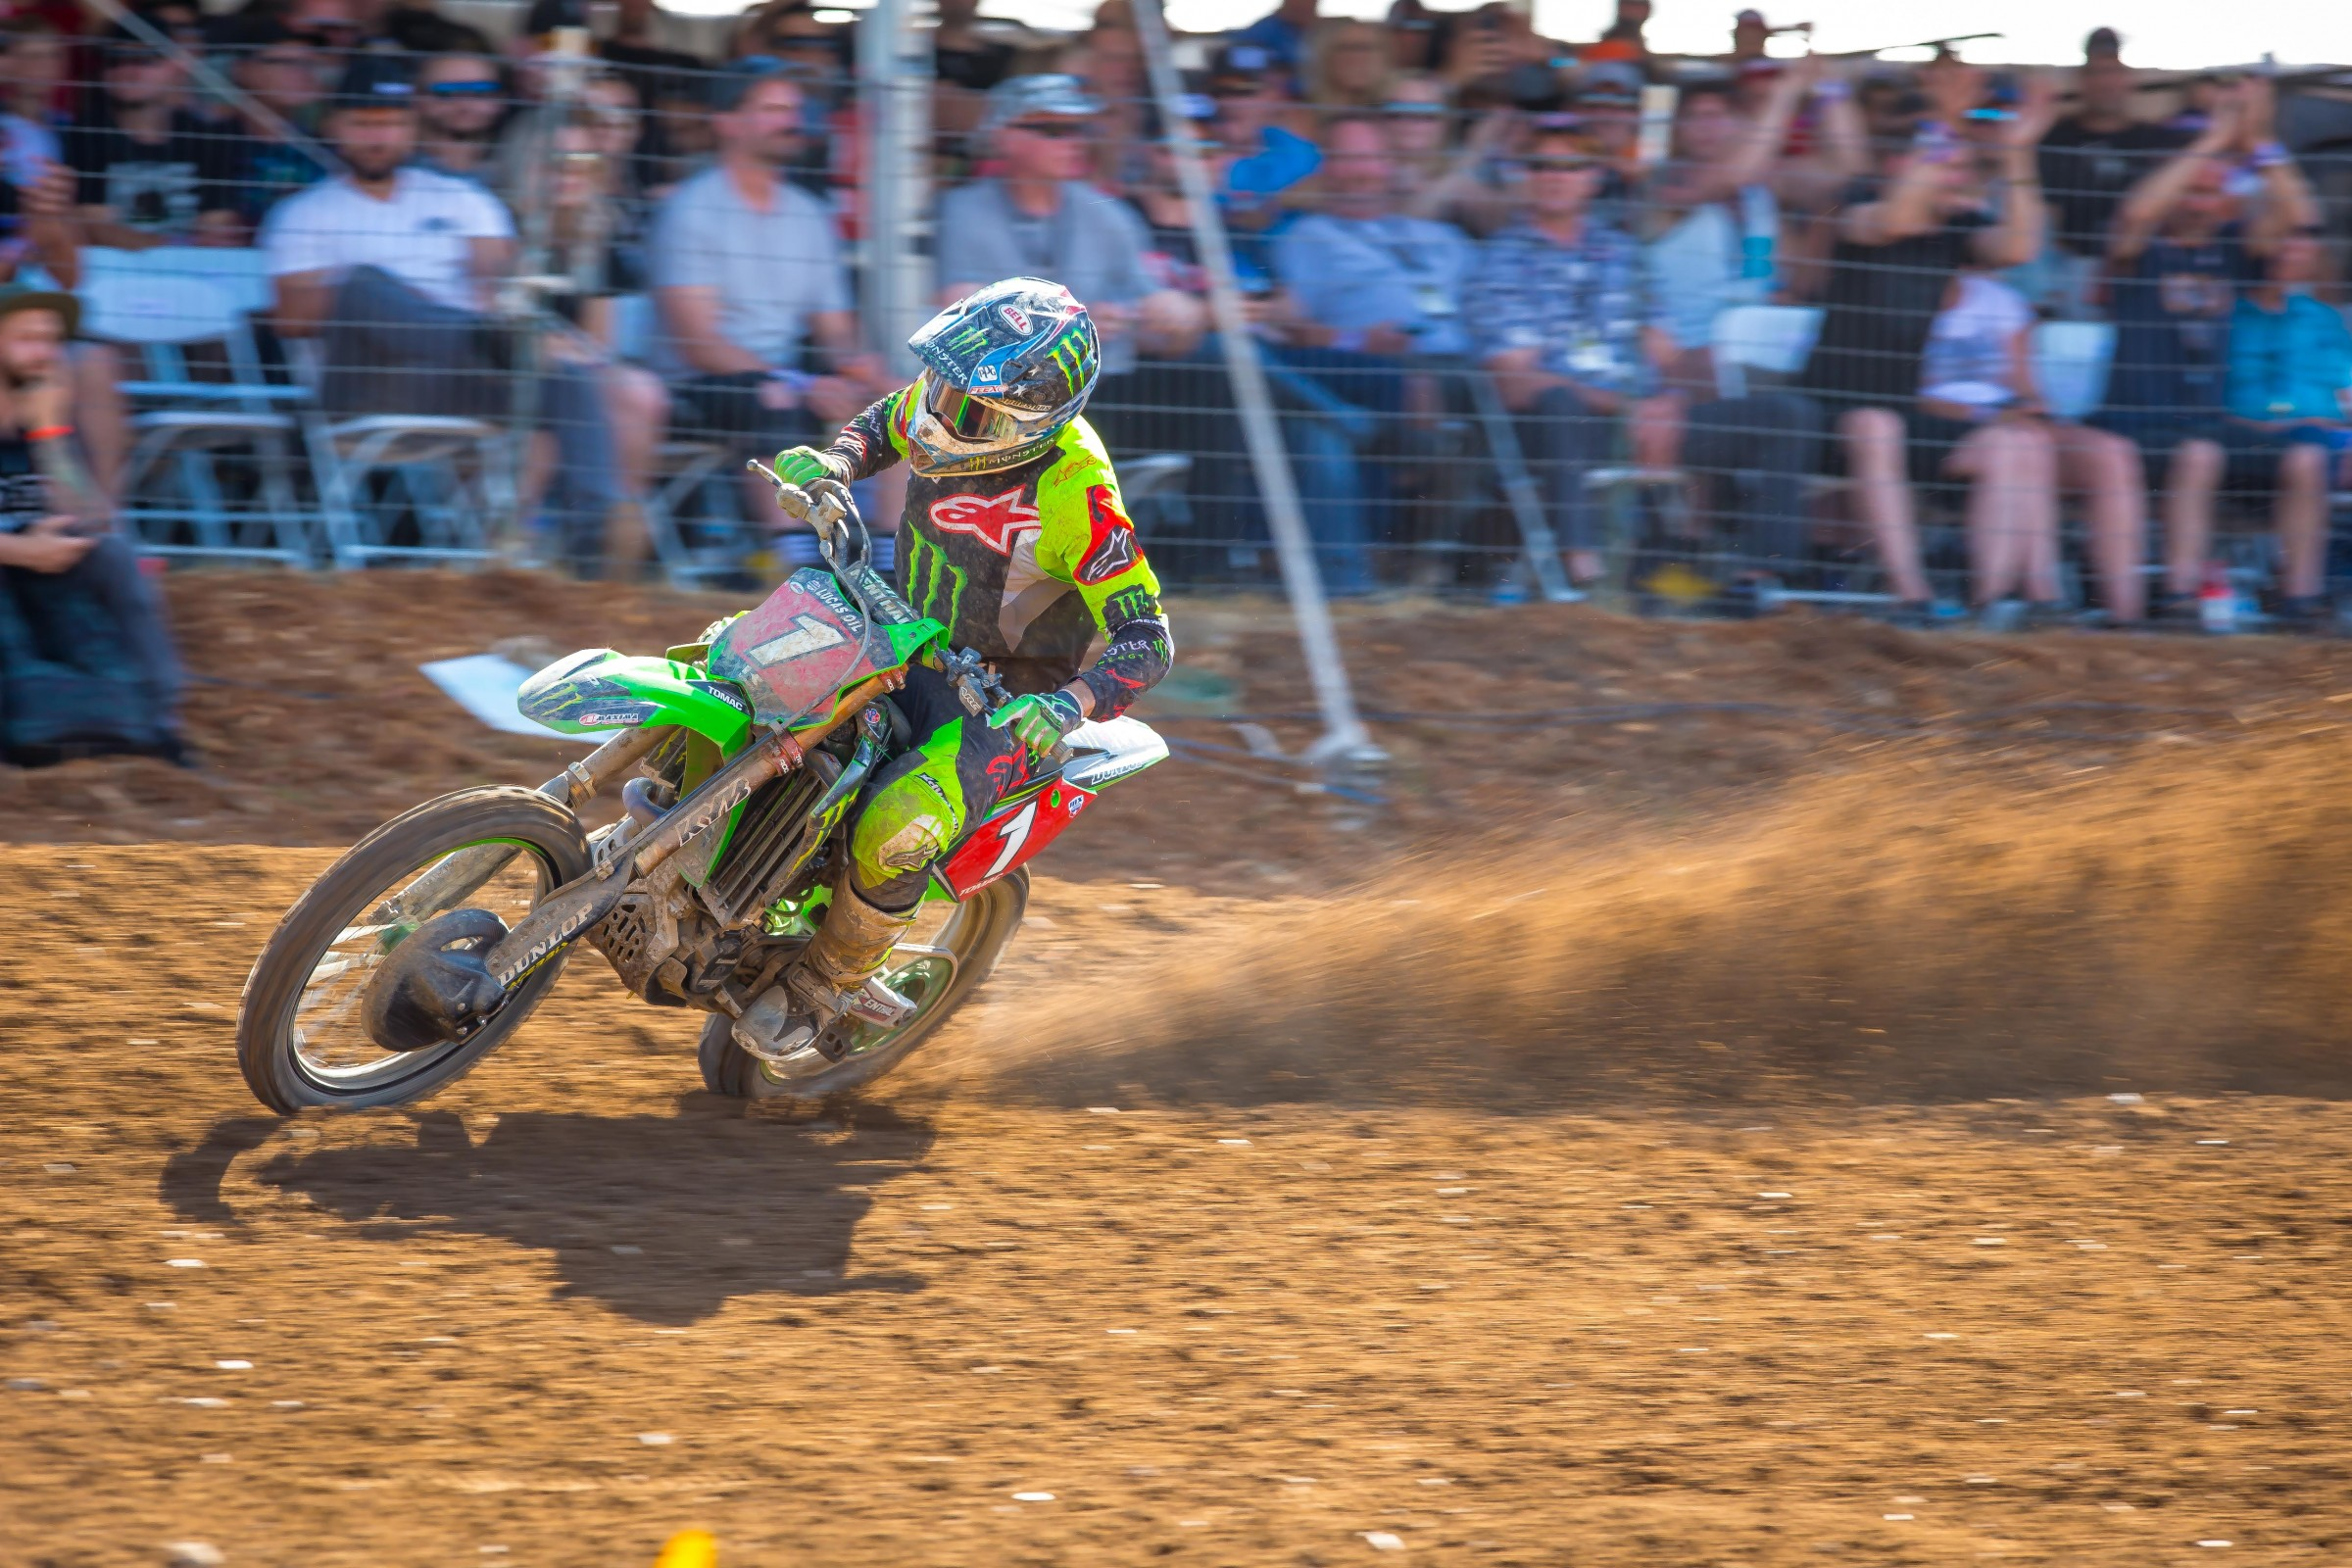 Tomac is the first rider since 2008 to win six straight motos at the beginning of the season.